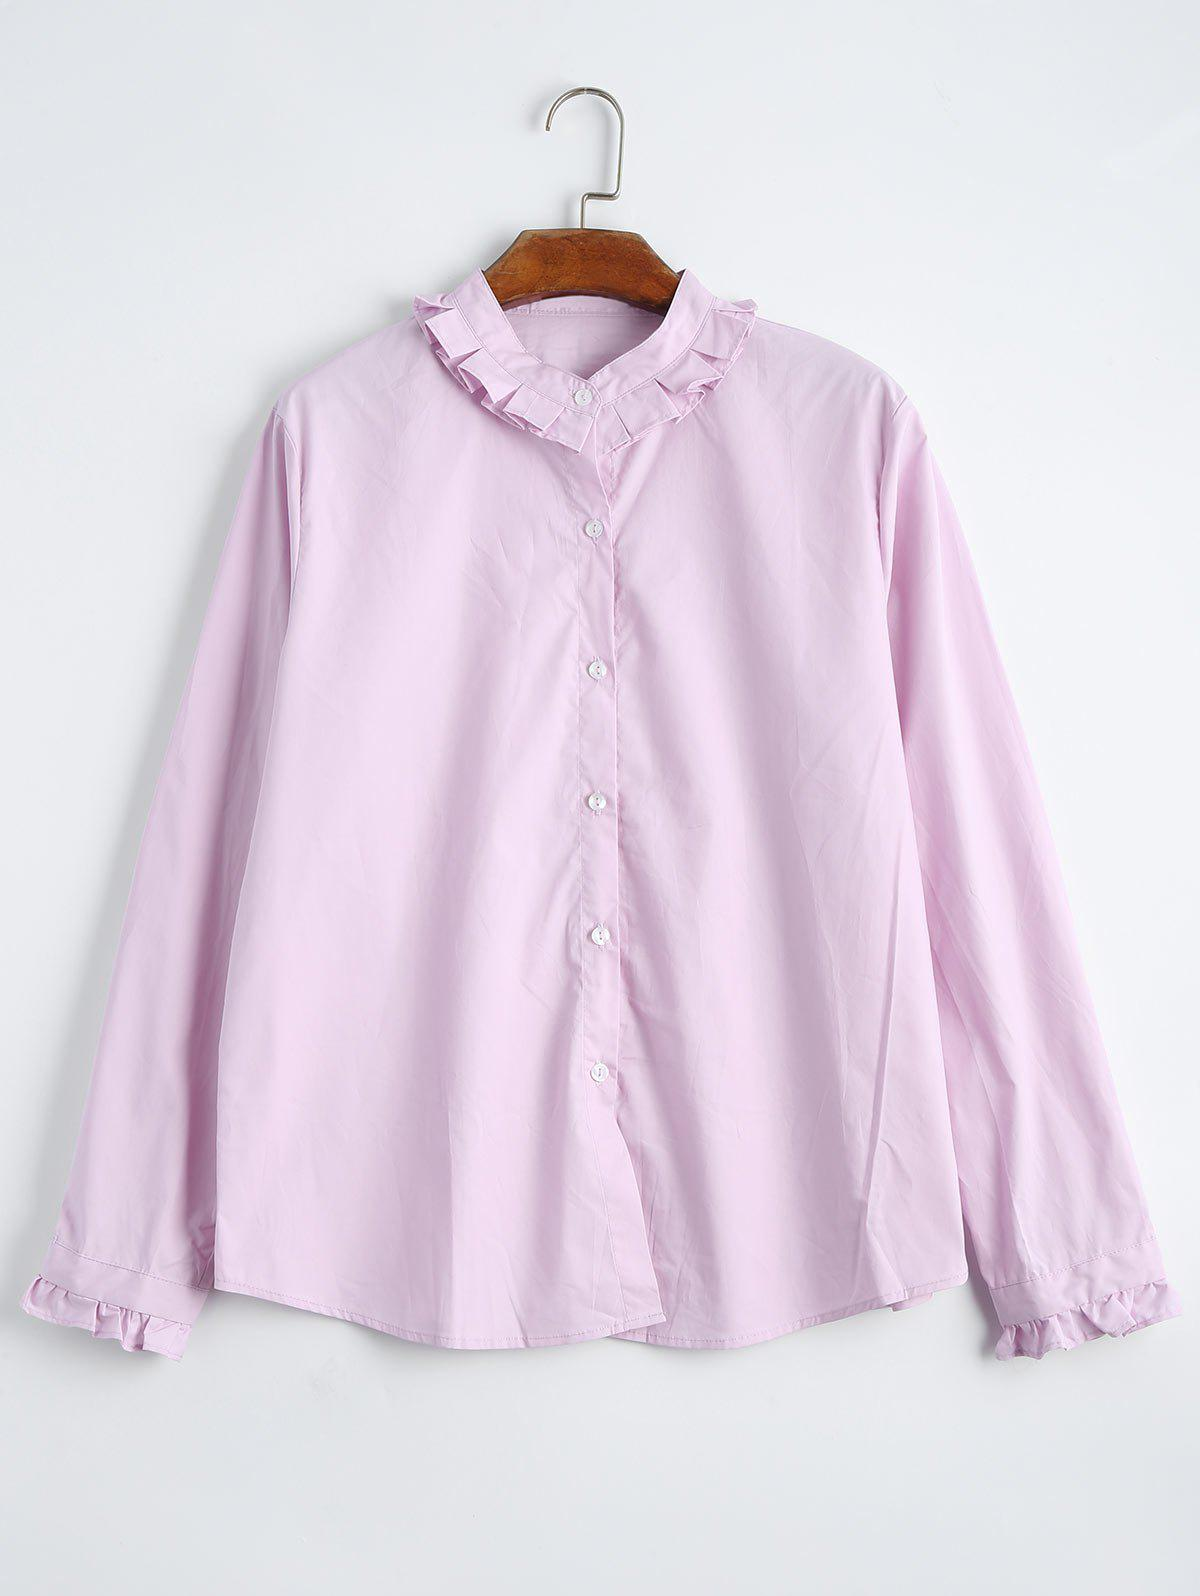 Plus Size Ruffle Neck Shirt Light Pink Xl In Plus Size